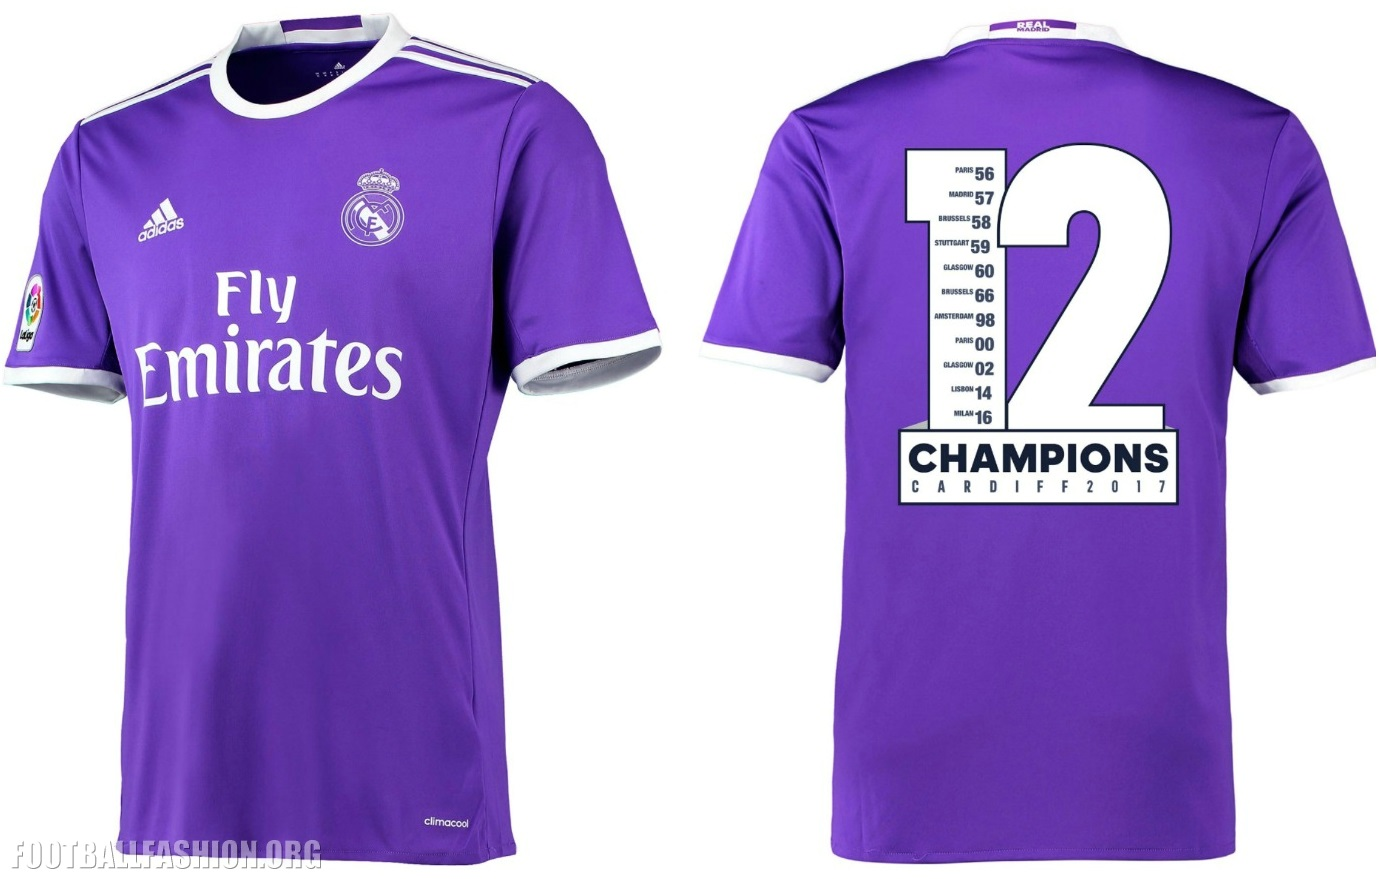 real madrid kit champions league on sale   OFF79% Discounts 743a41de59f49